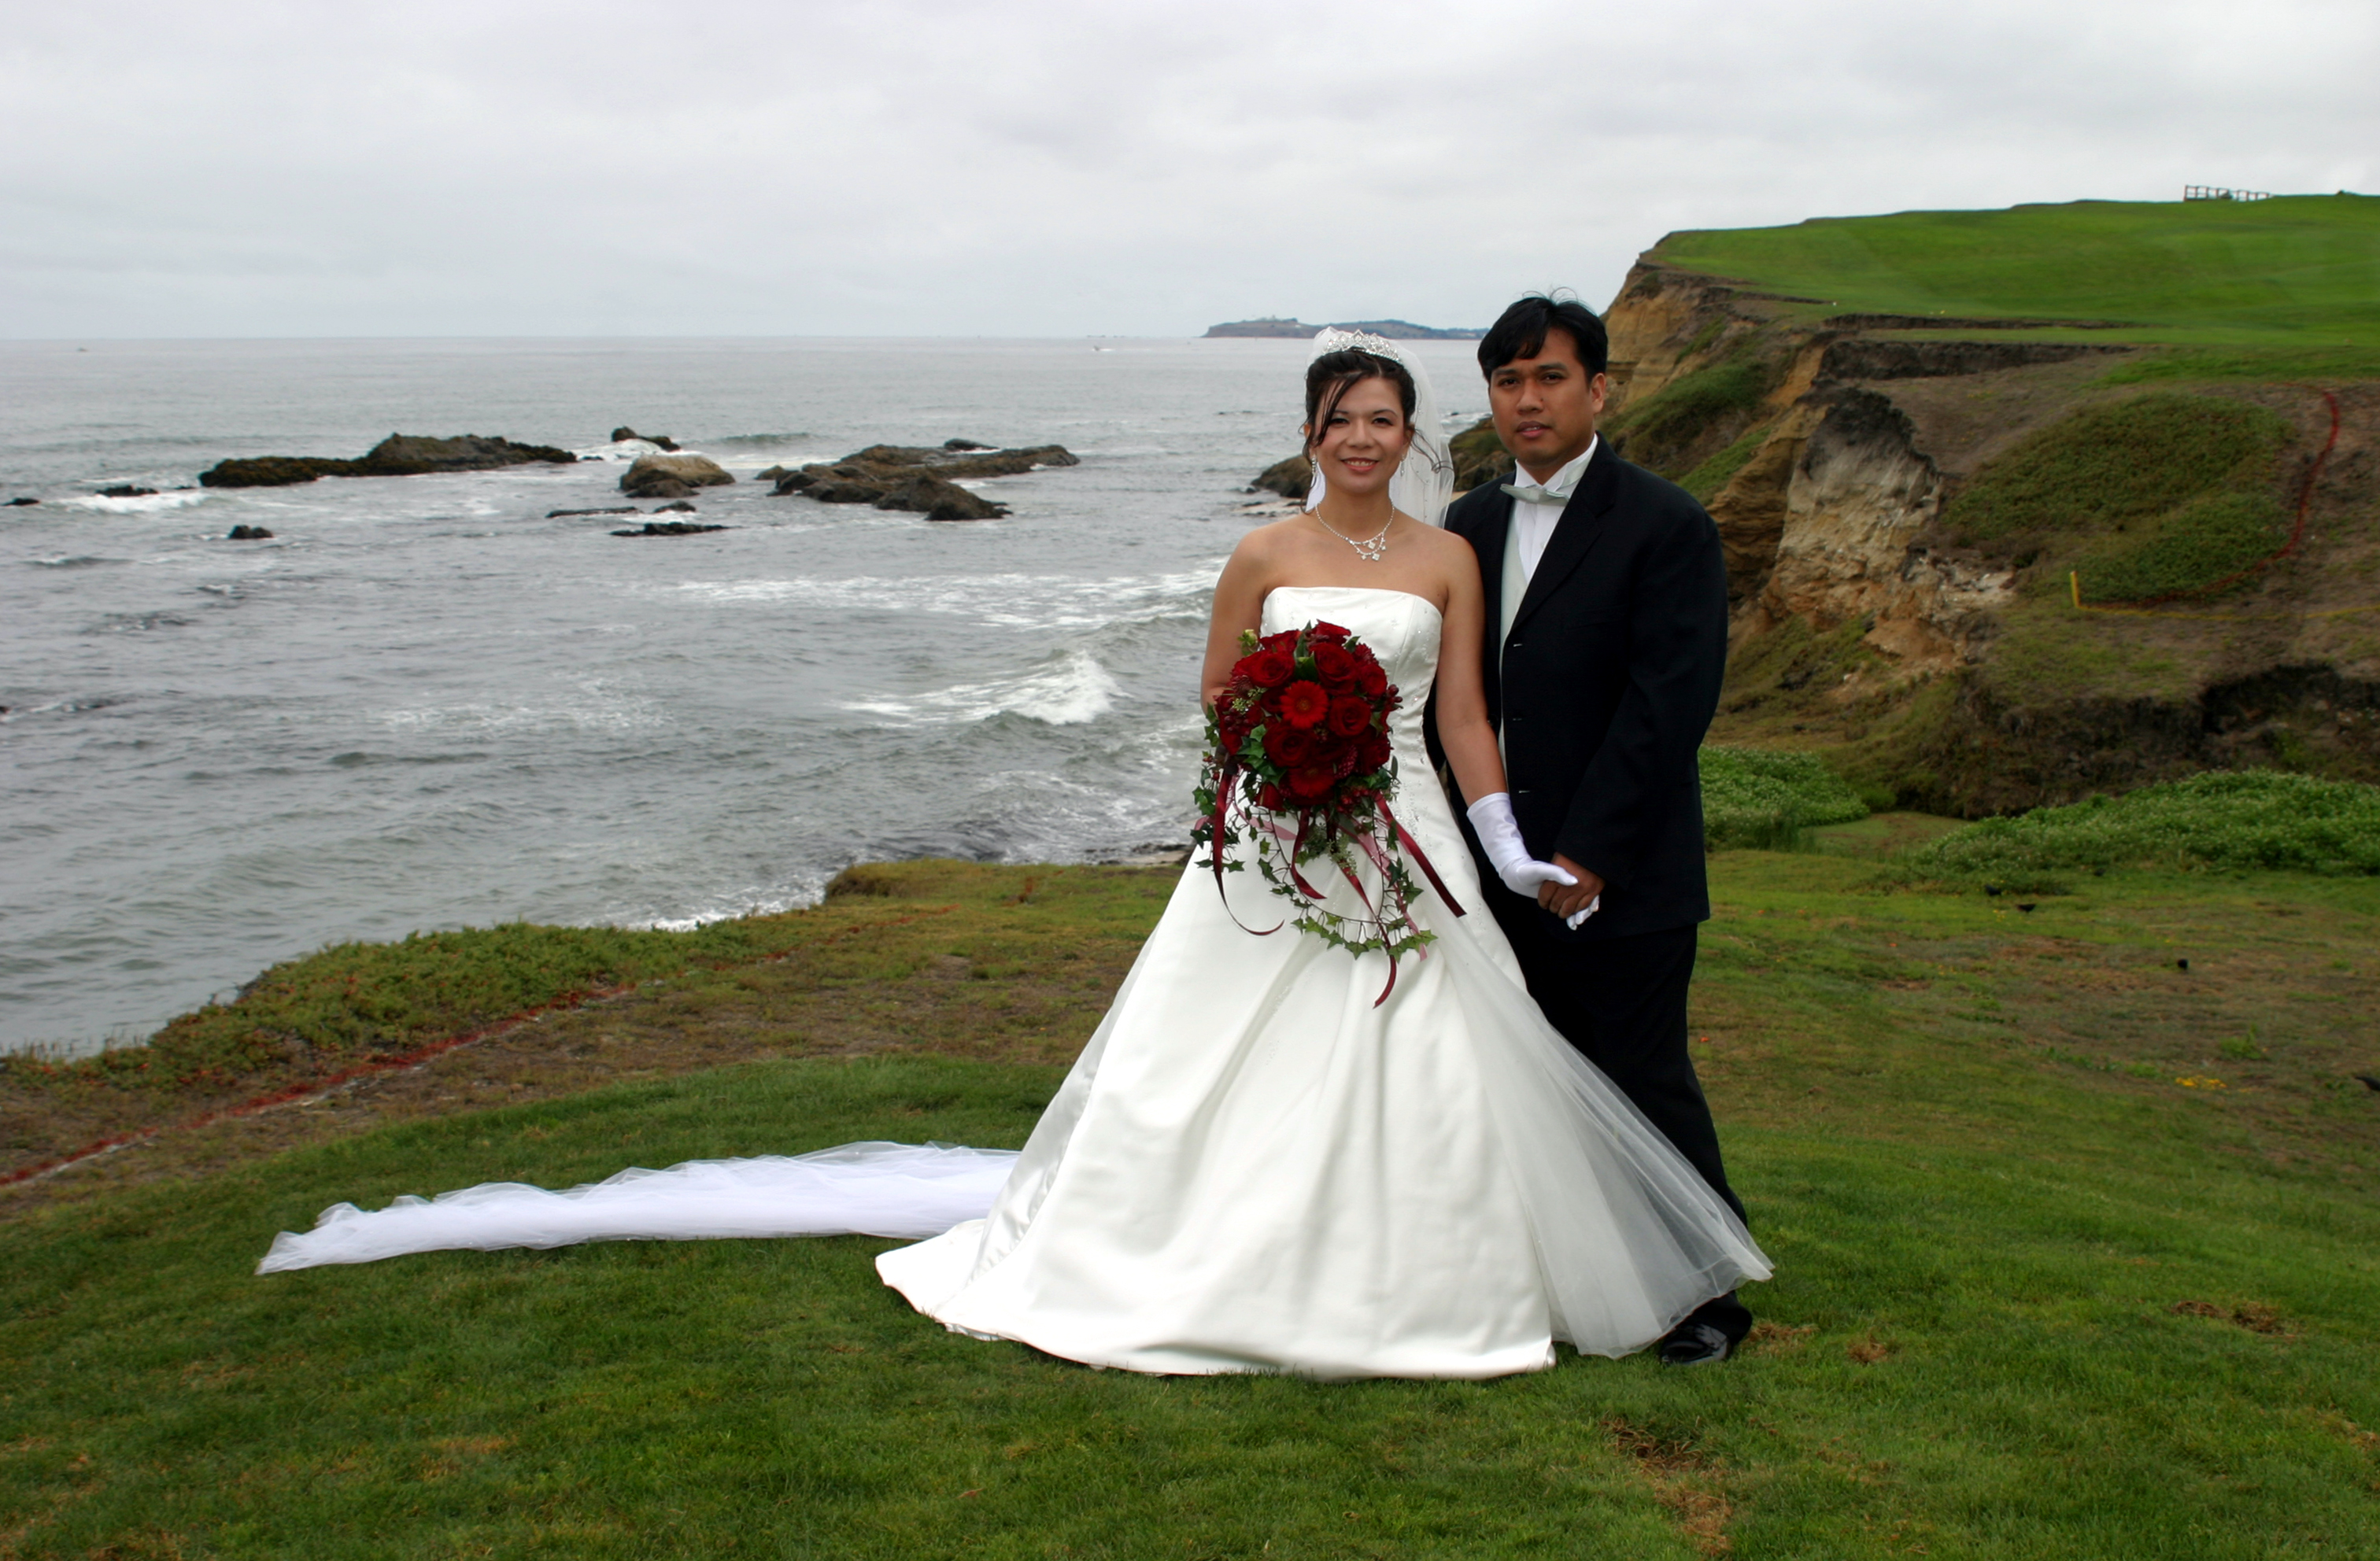 Bride and groom overlooking green coastline.